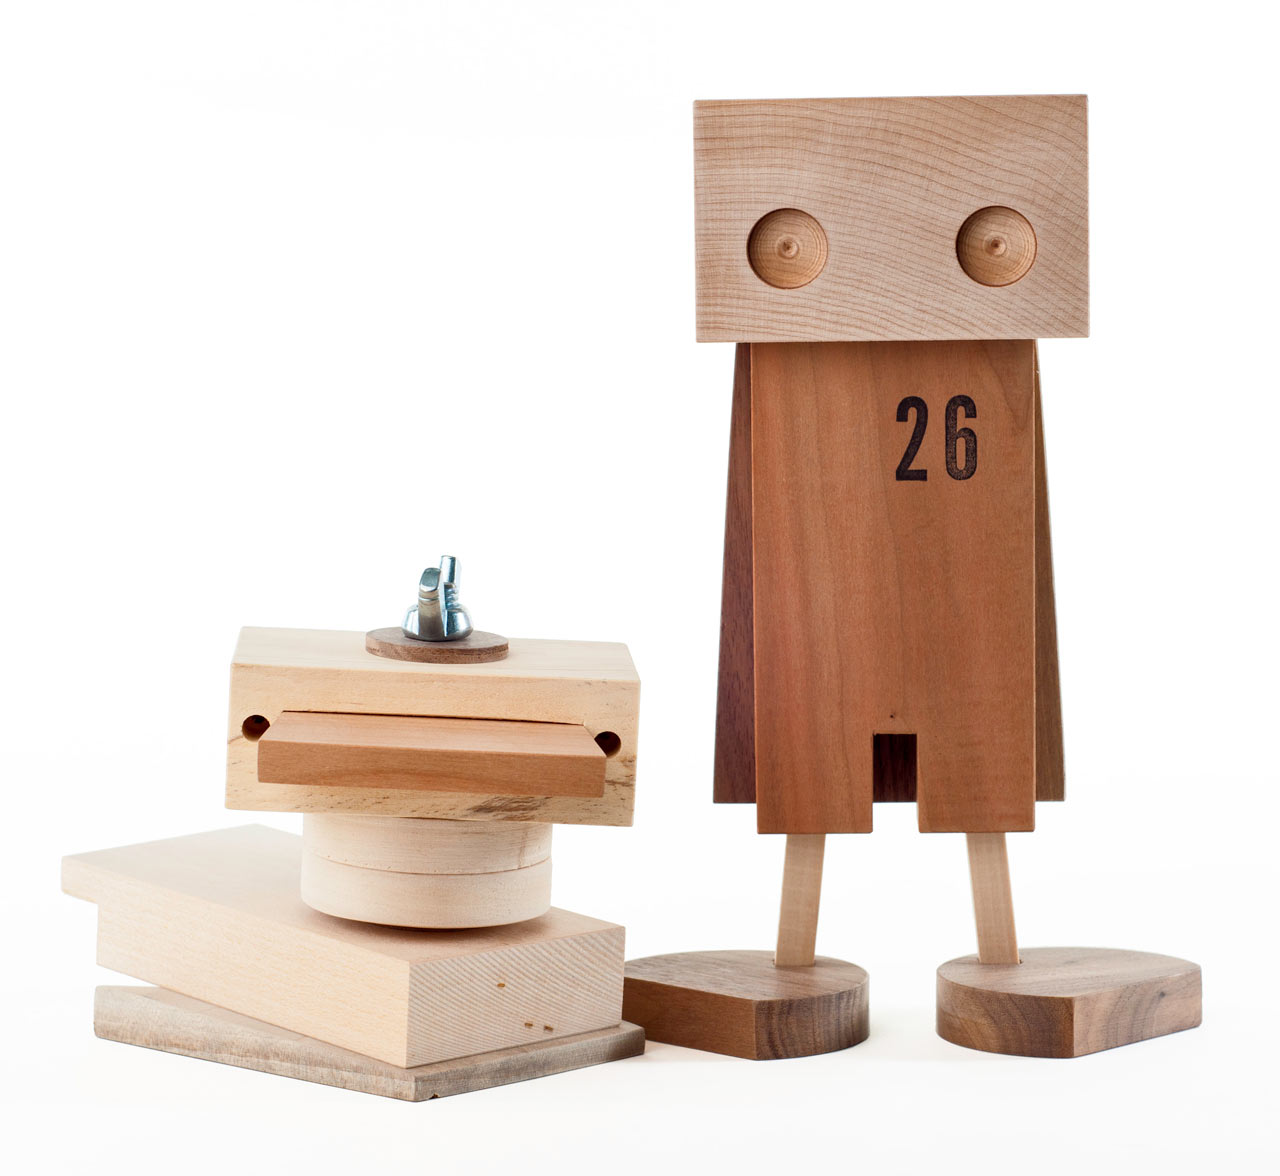 Handmade wooden toys made from scrap wood design milk - Design on wooden ...